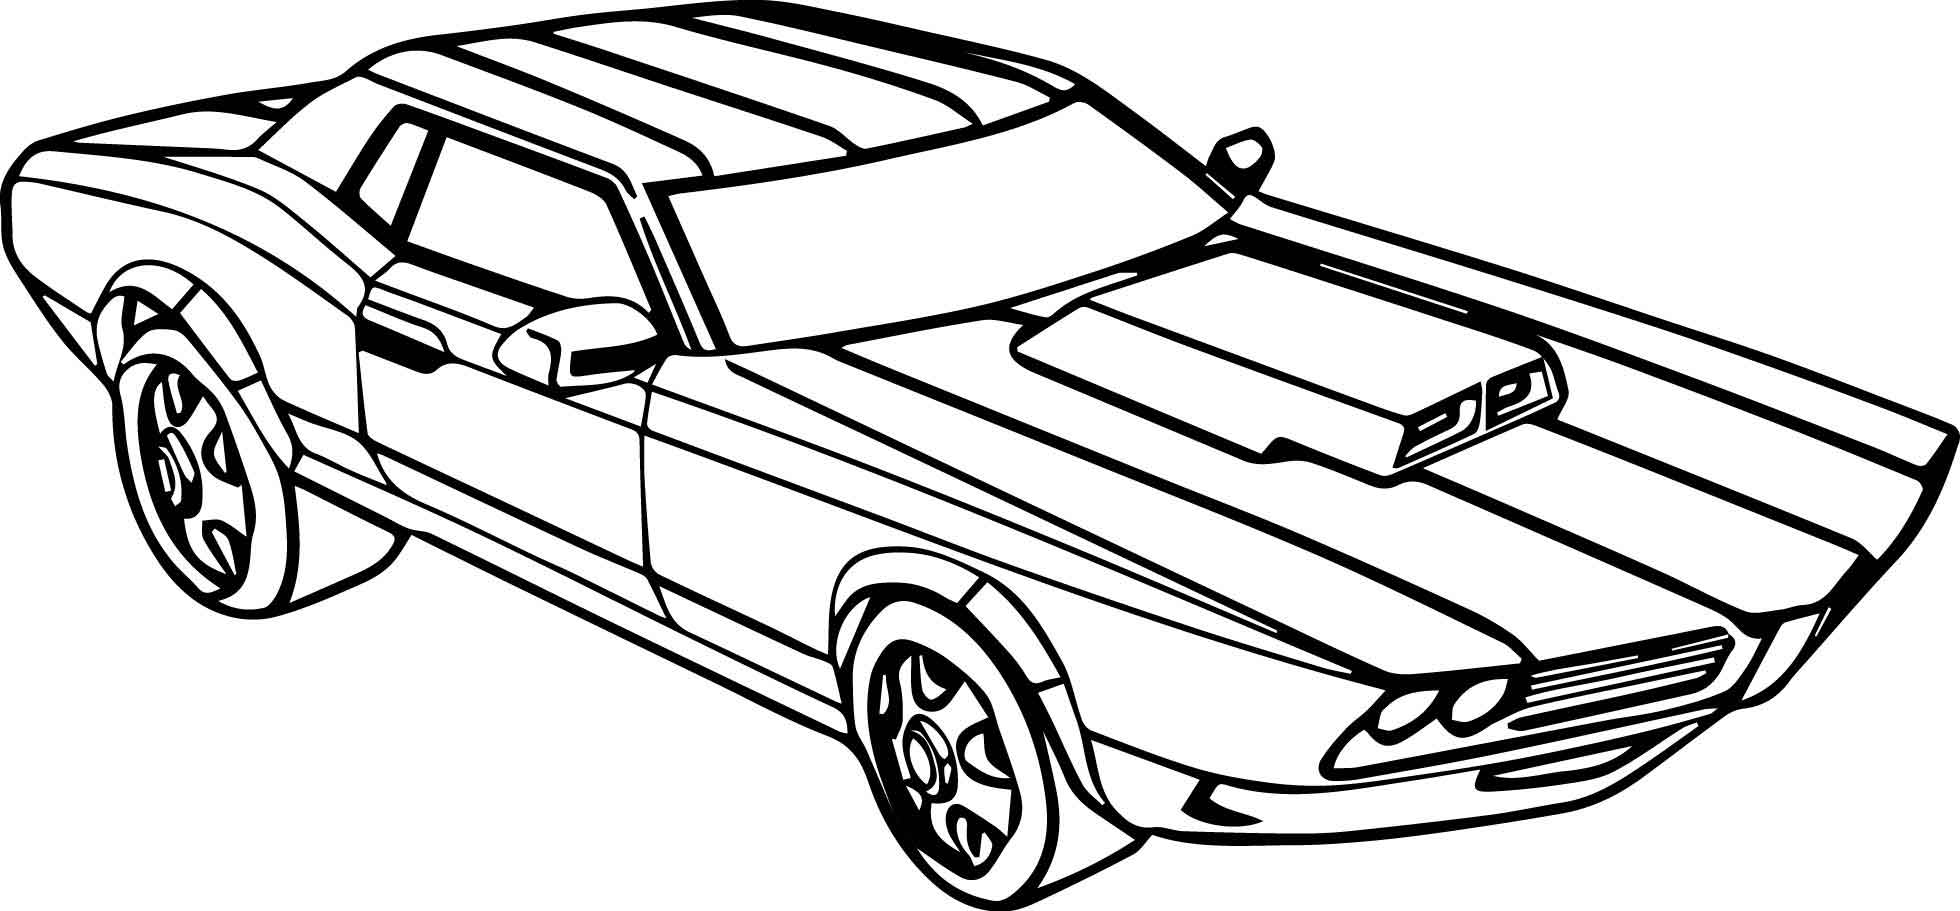 racecar coloring page cool printable race cars coloring pages of sporty old cars racecar coloring page